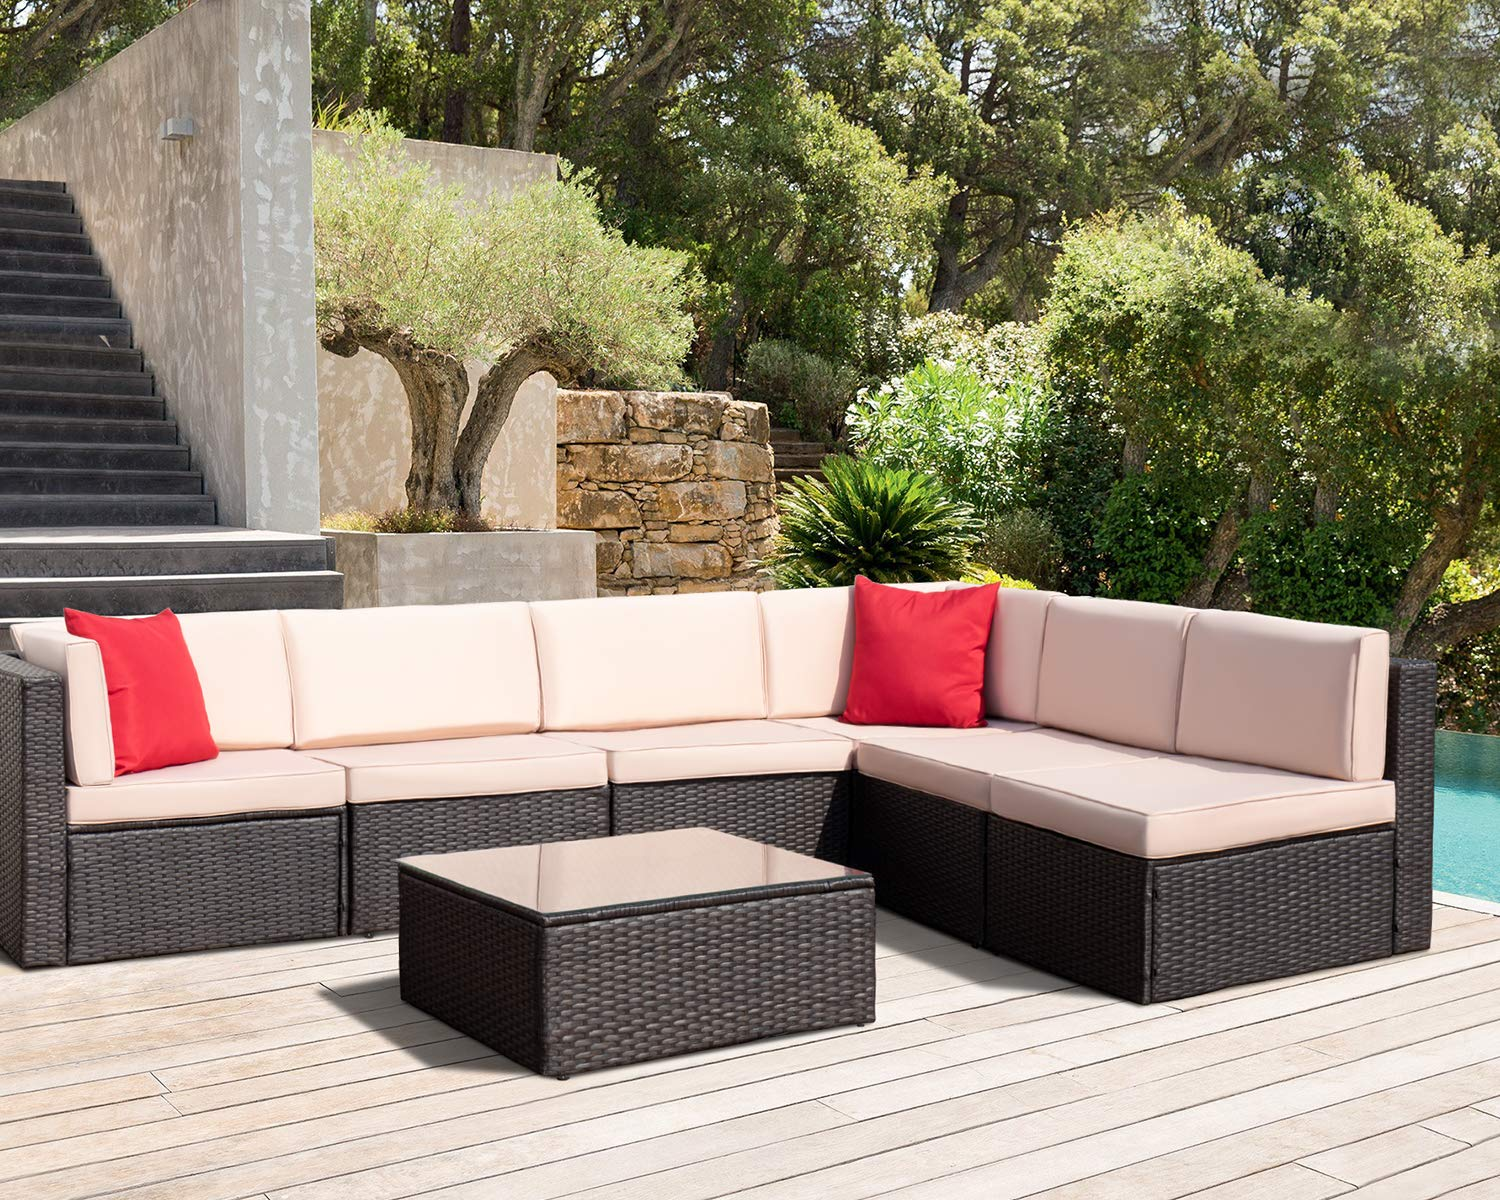 7 Pieces Patio Furniture Sets PE Wicker Rattan Outdoor Sectional Garden Set All-Weather Lawn Conversation Set with Glass Coffee Table and Beige Cushion Brown